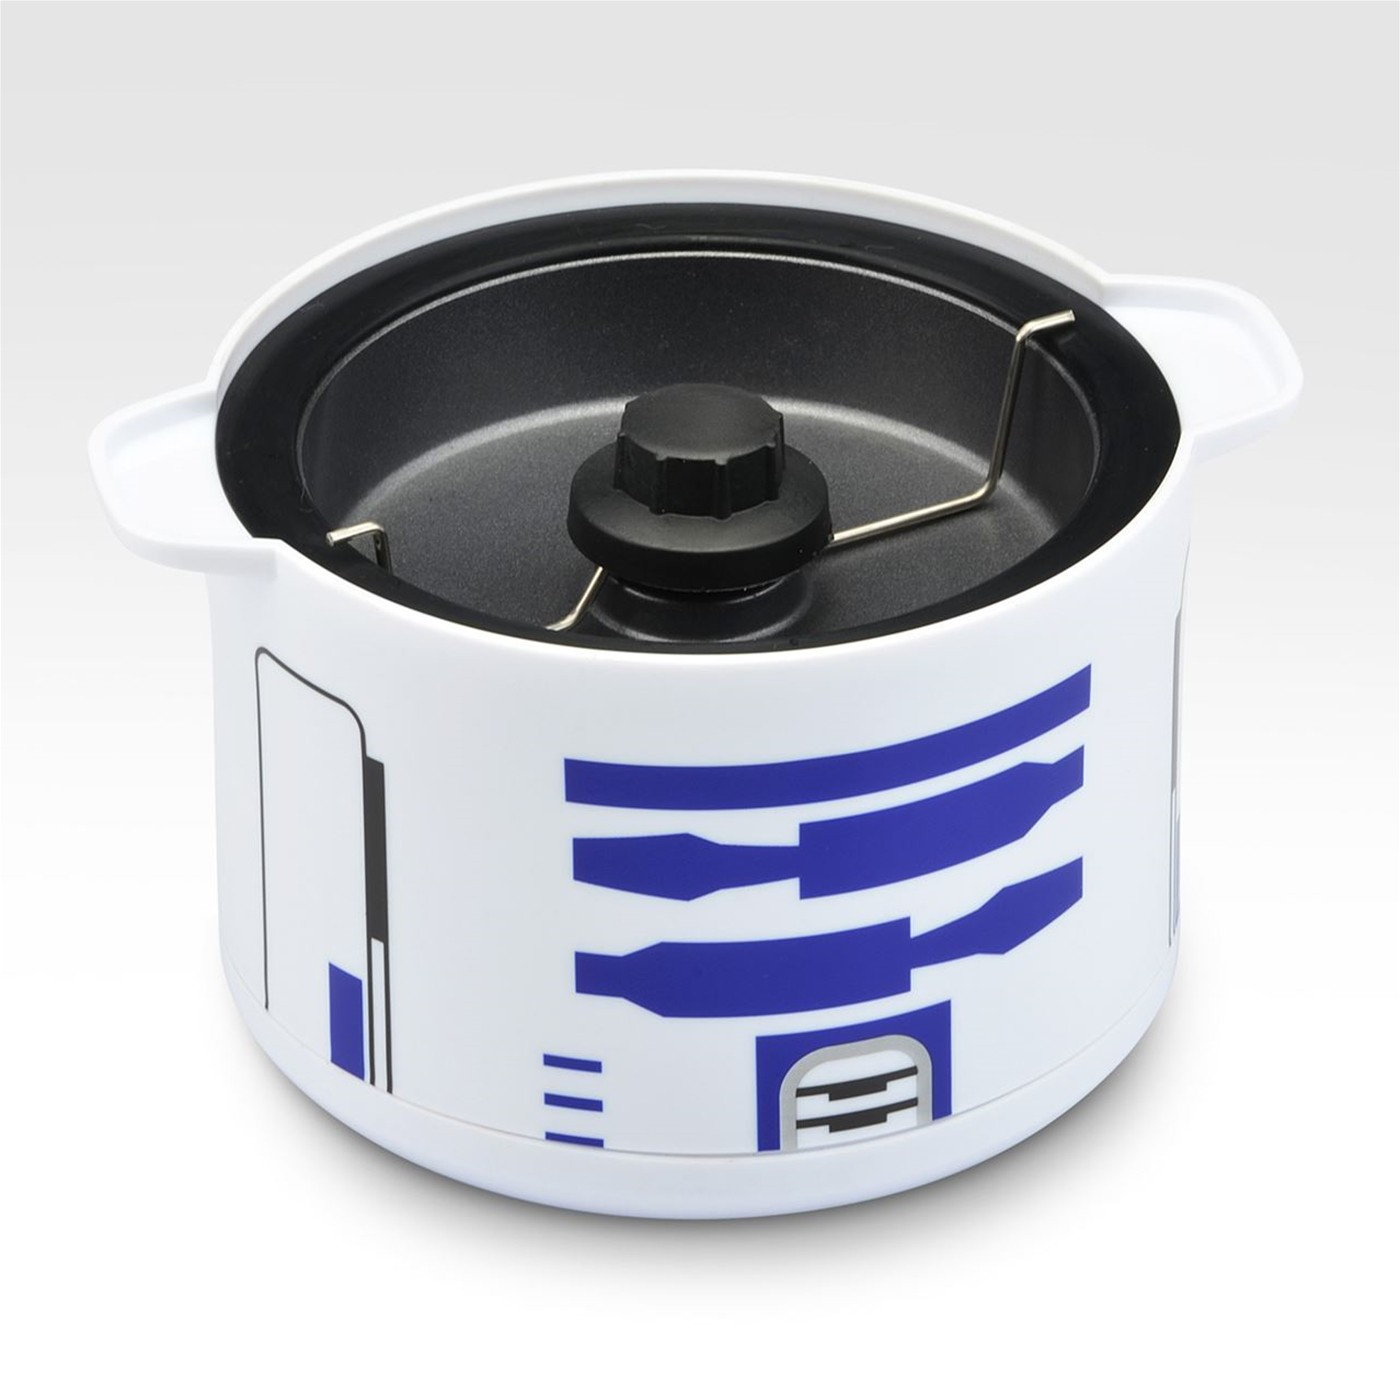 Star Wars R2-D2 Stir Popcorn Popper